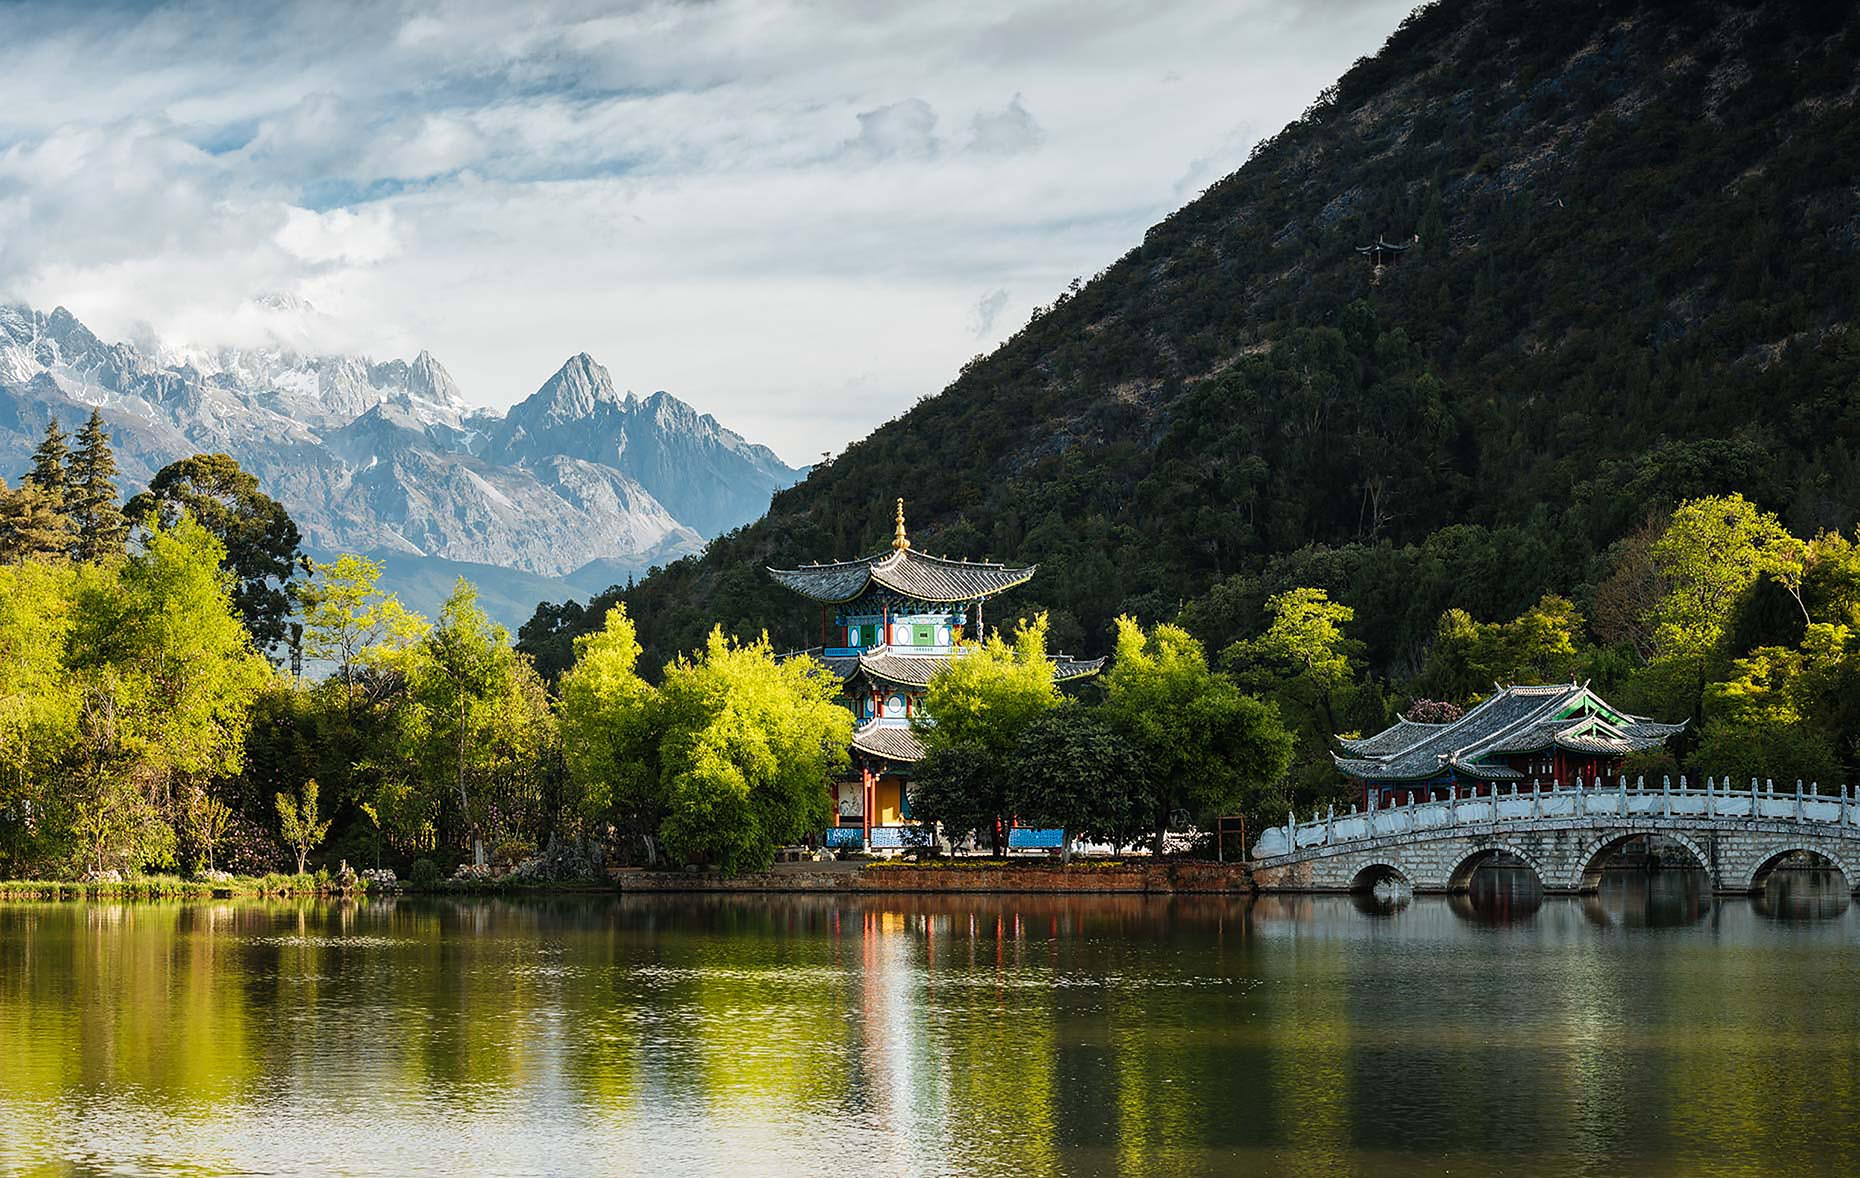 black-dragon-pool-jade-dragon-mountain-temple-lijiang-china-20